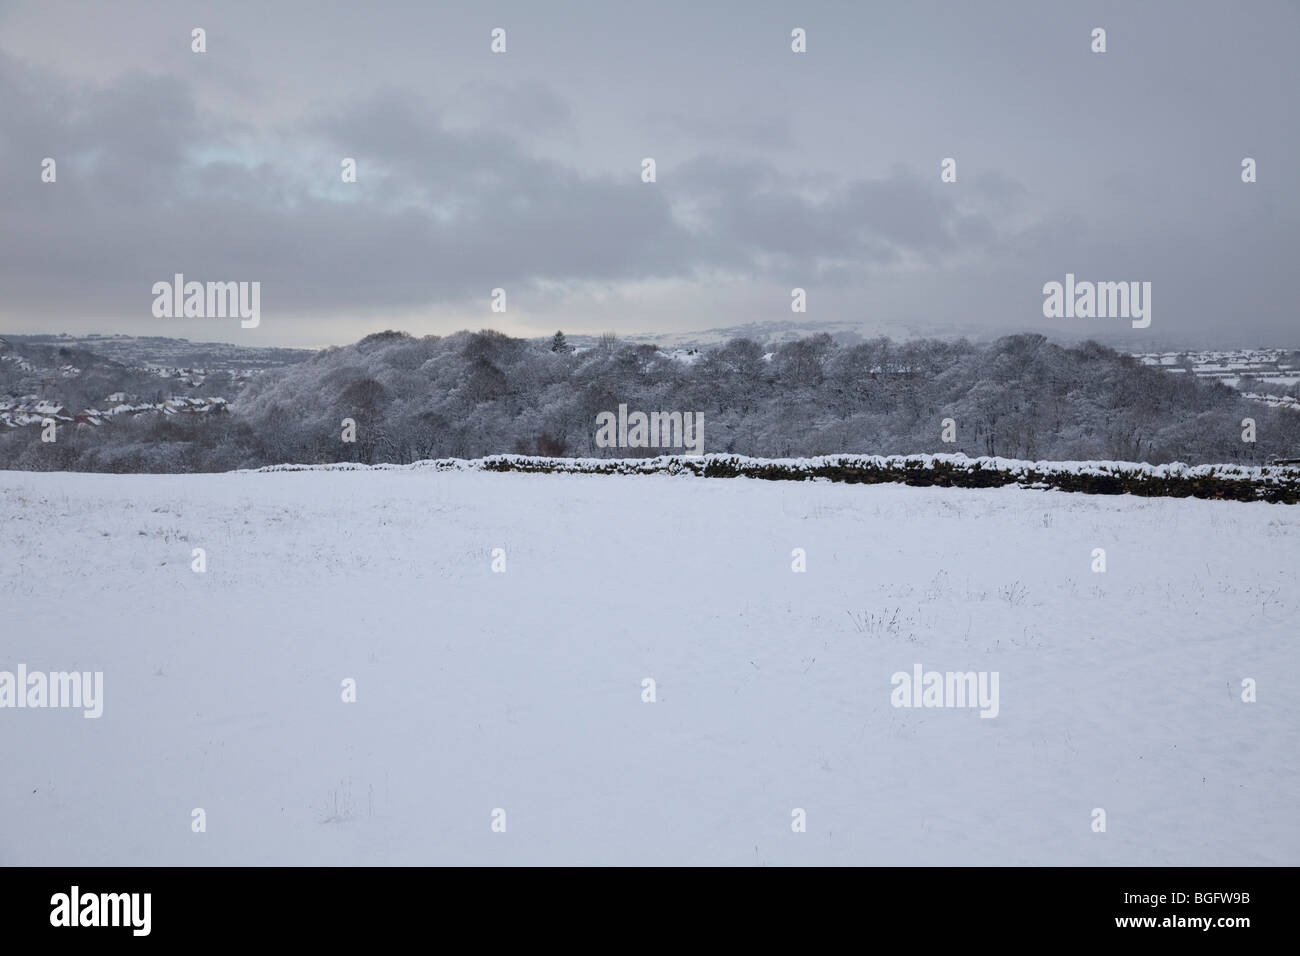 A bleak winter snow scene on the hills in West Yorkshire with dark snow filled clouds - Stock Image